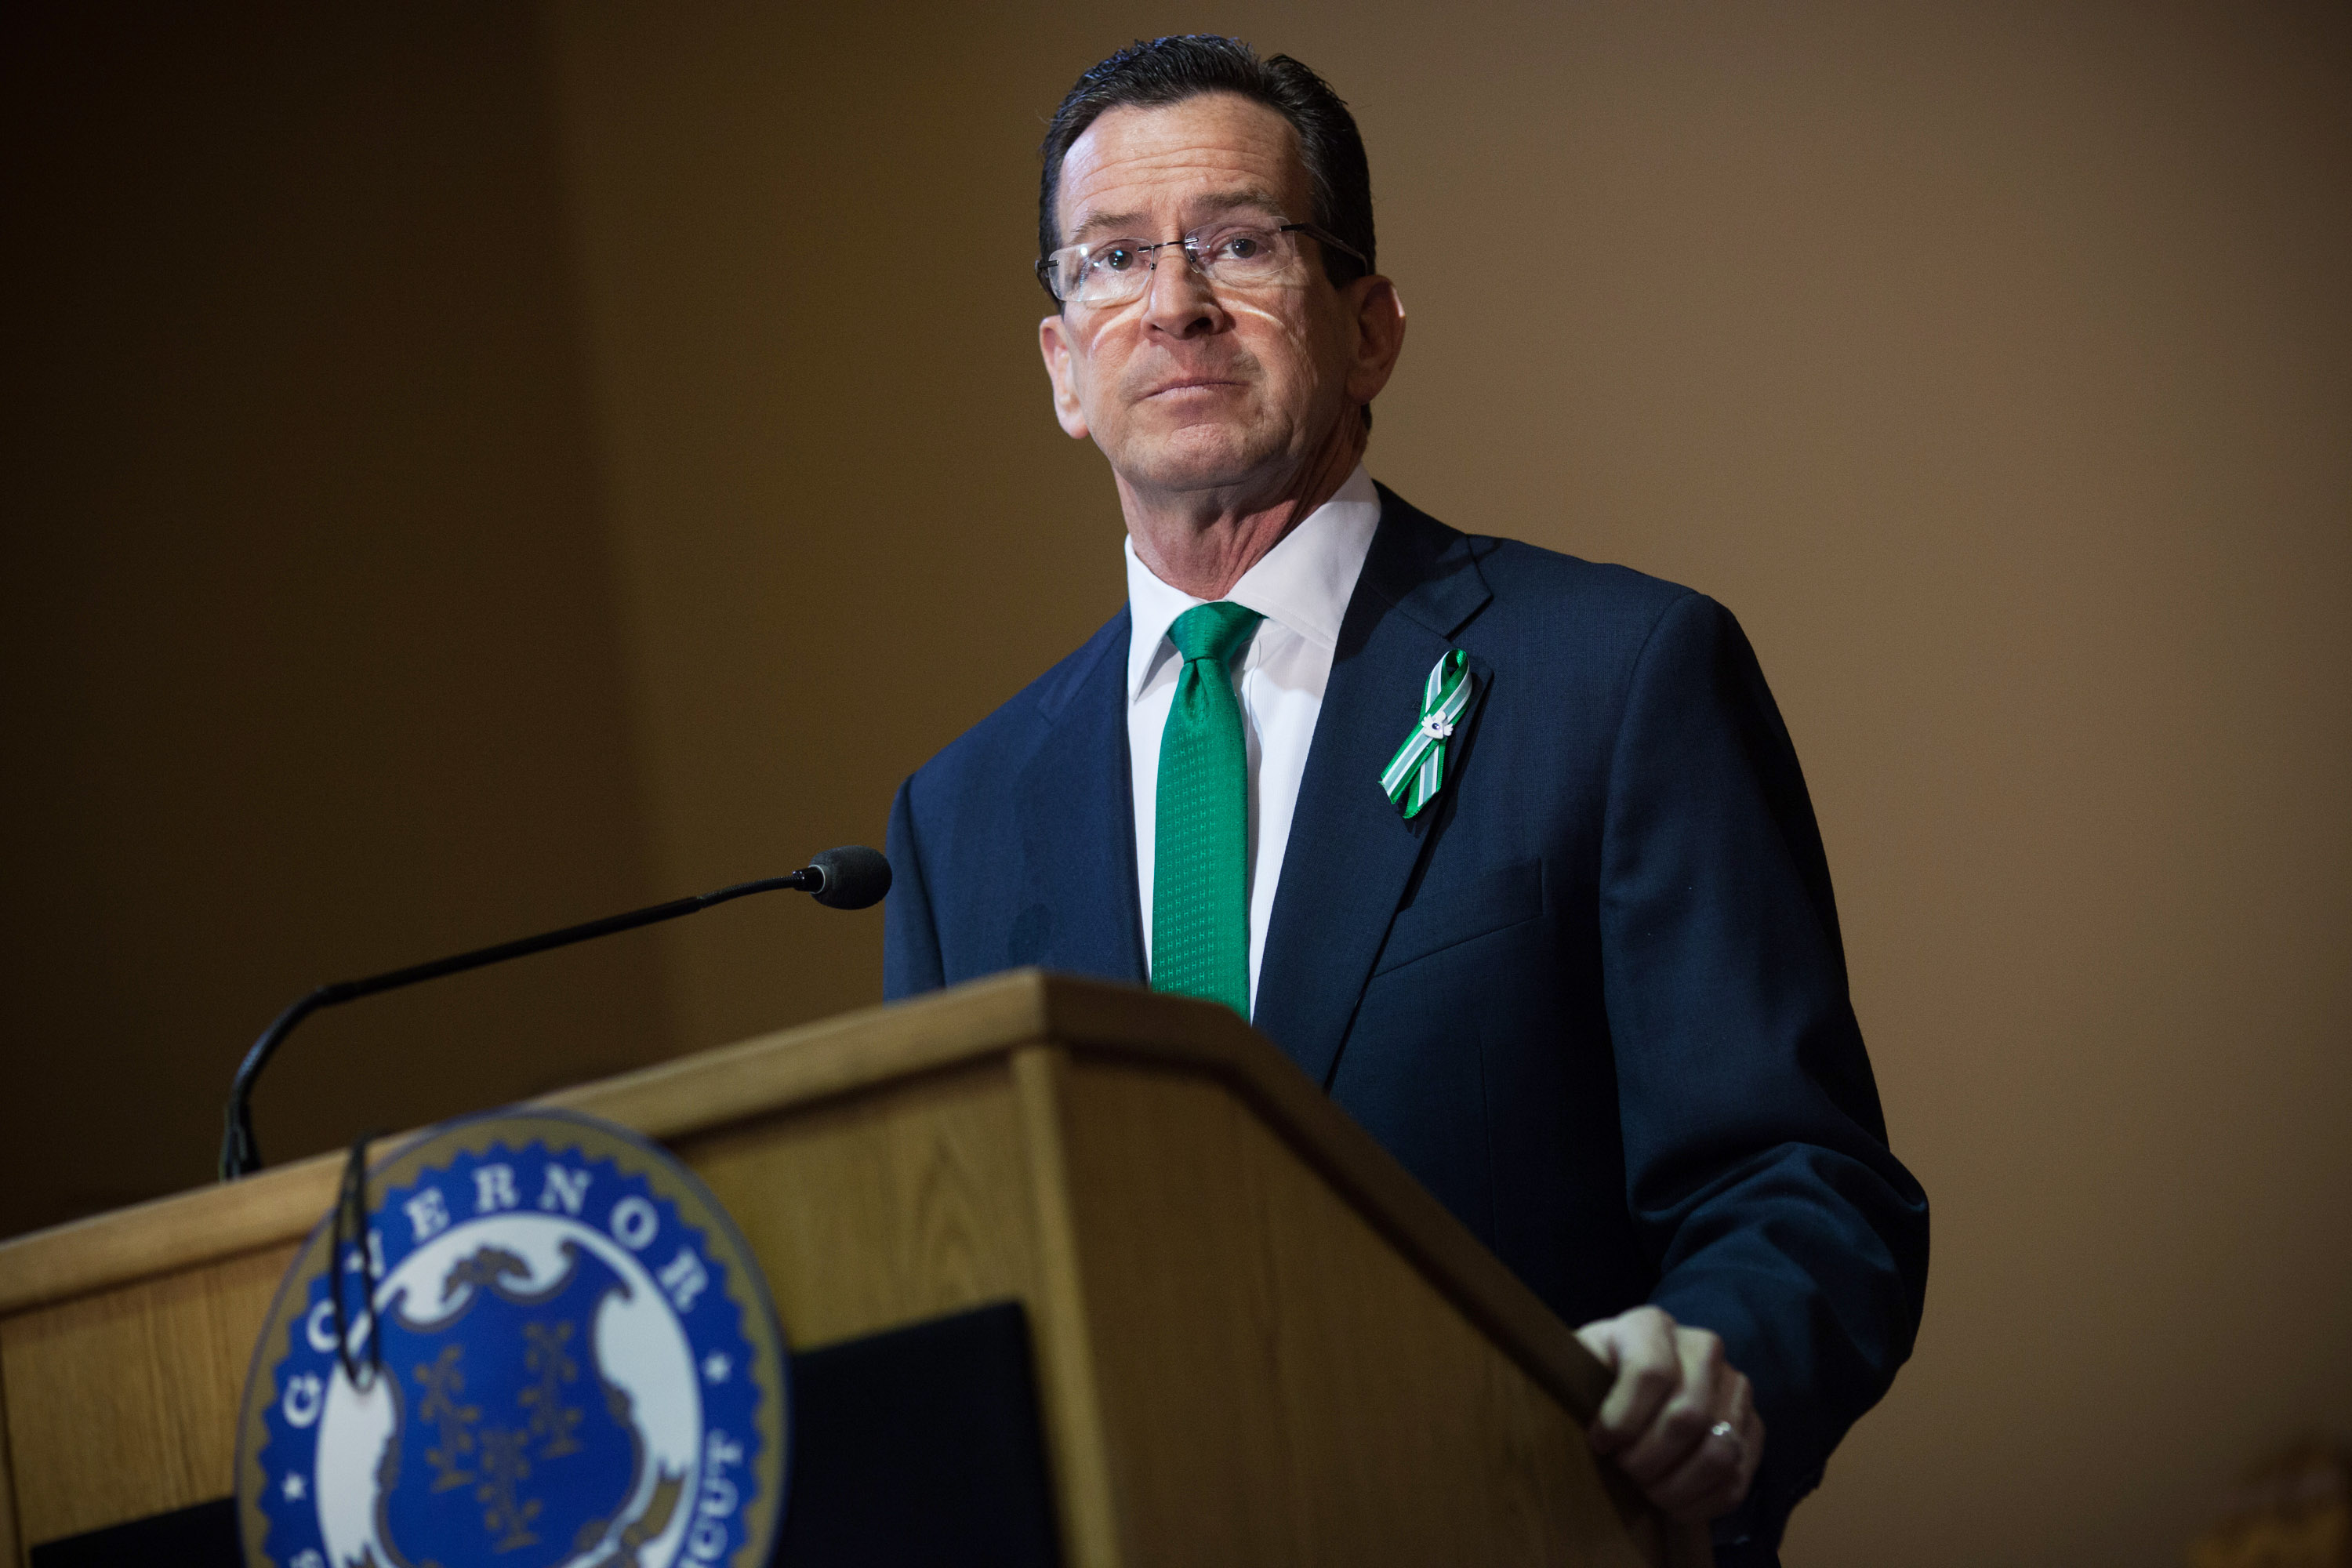 Connecticut Governor Dannel Malloy speaks during the gun-control-law-signing event at the Connecticut Capitol on April 4, 2013, in Hartford, Conn.